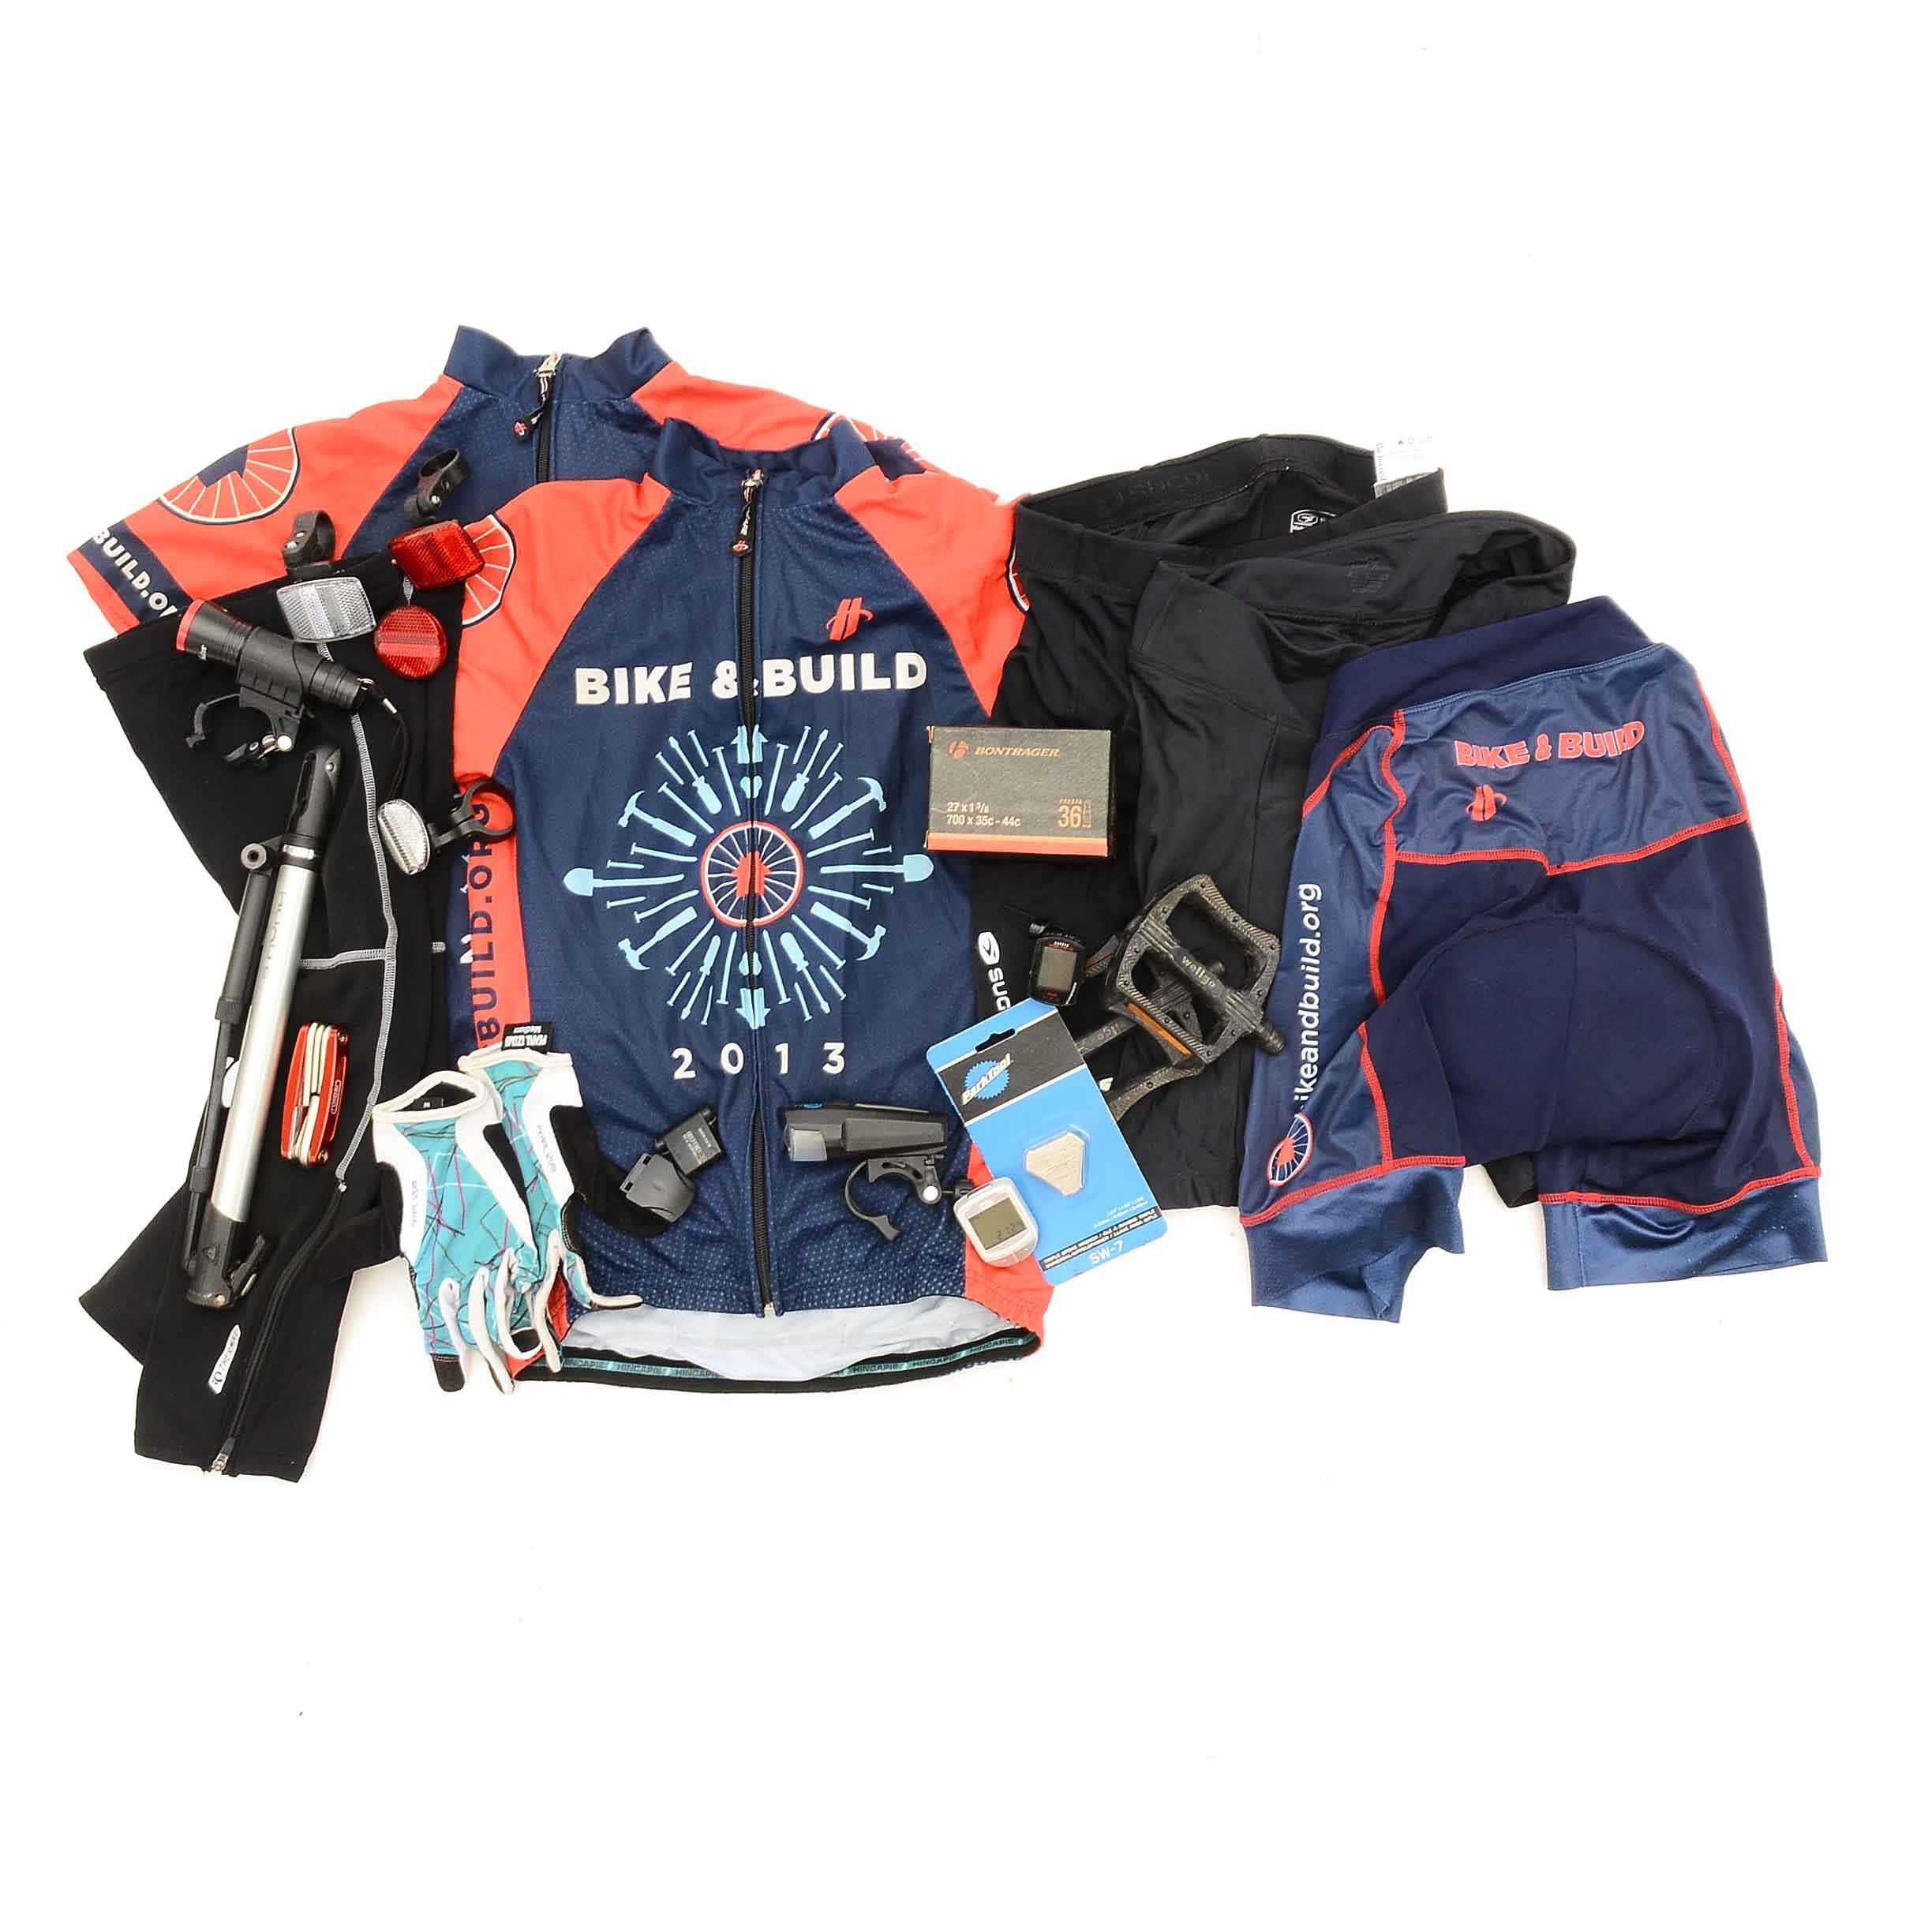 Cycling Accessories and Apparel